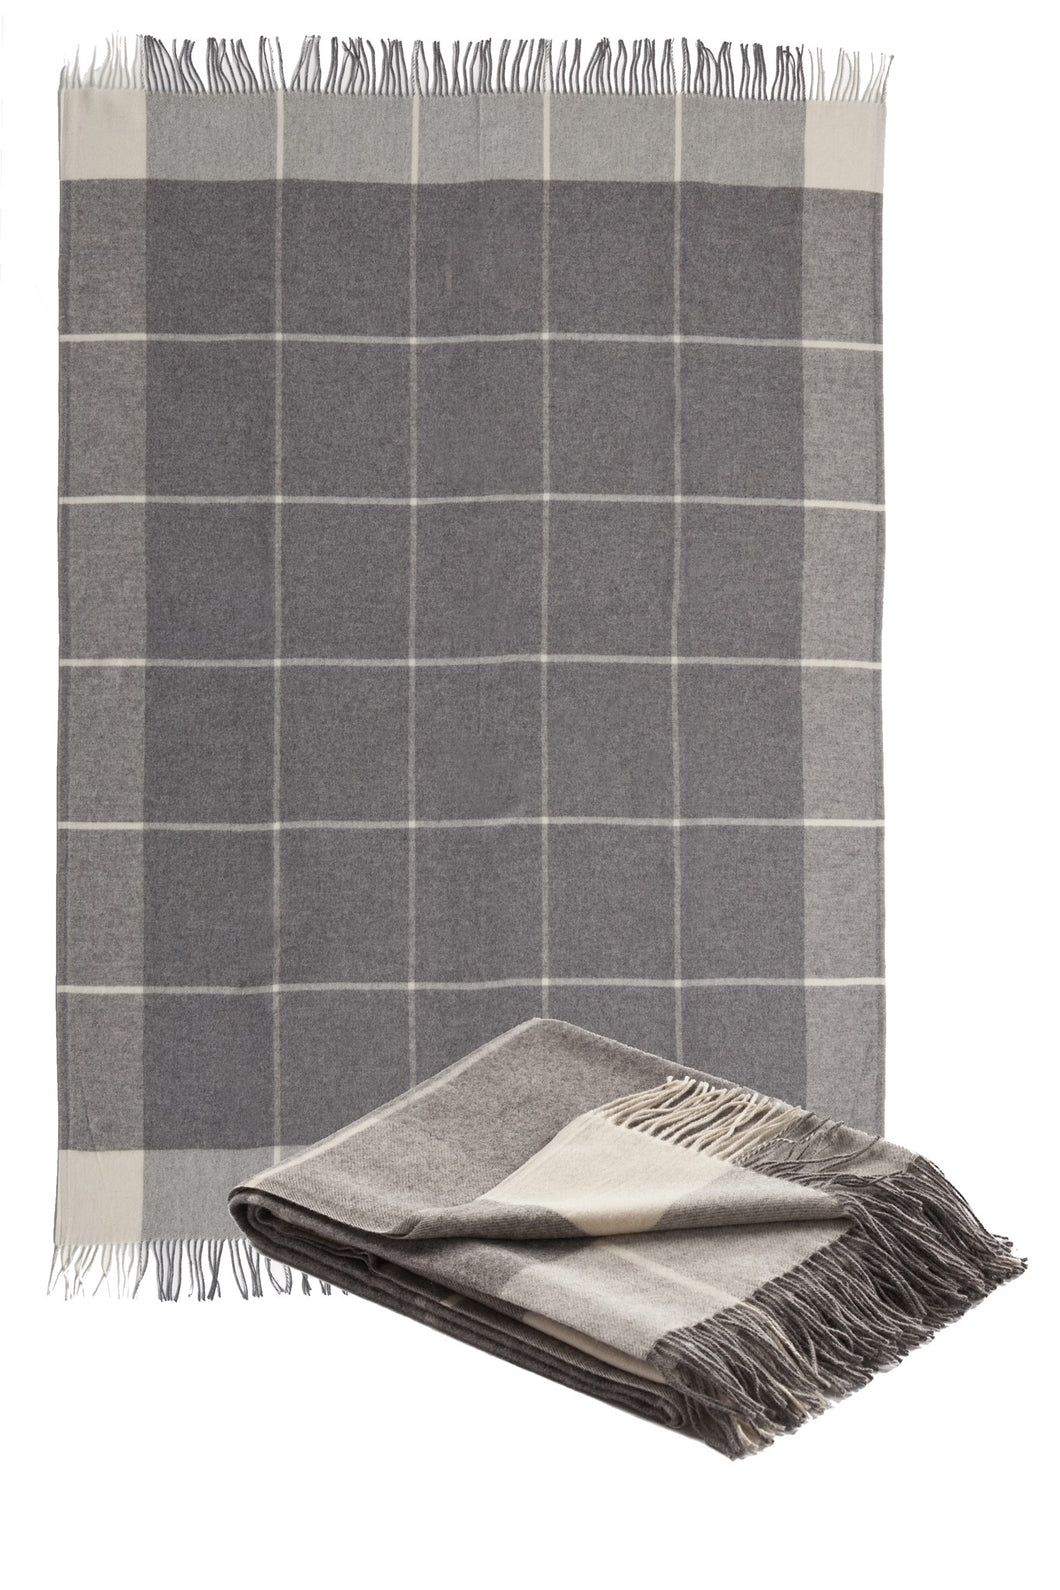 SMITH Woven Throw Grey, By Fibre Auskin, FA5